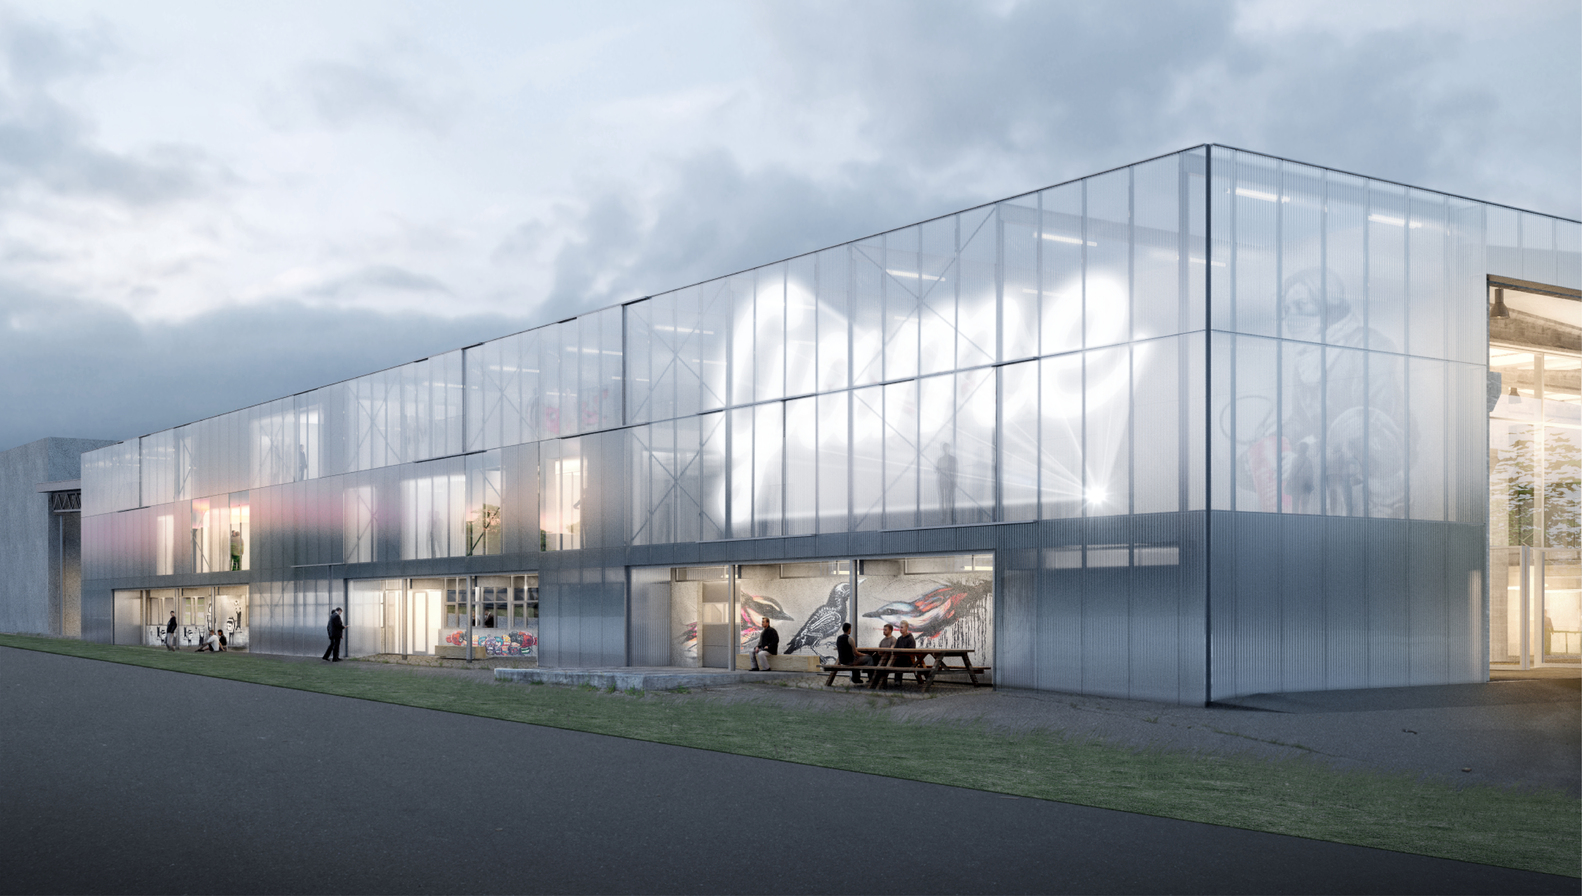 EFFEKT's Winning Proposal Converts Abandoned Warehouse